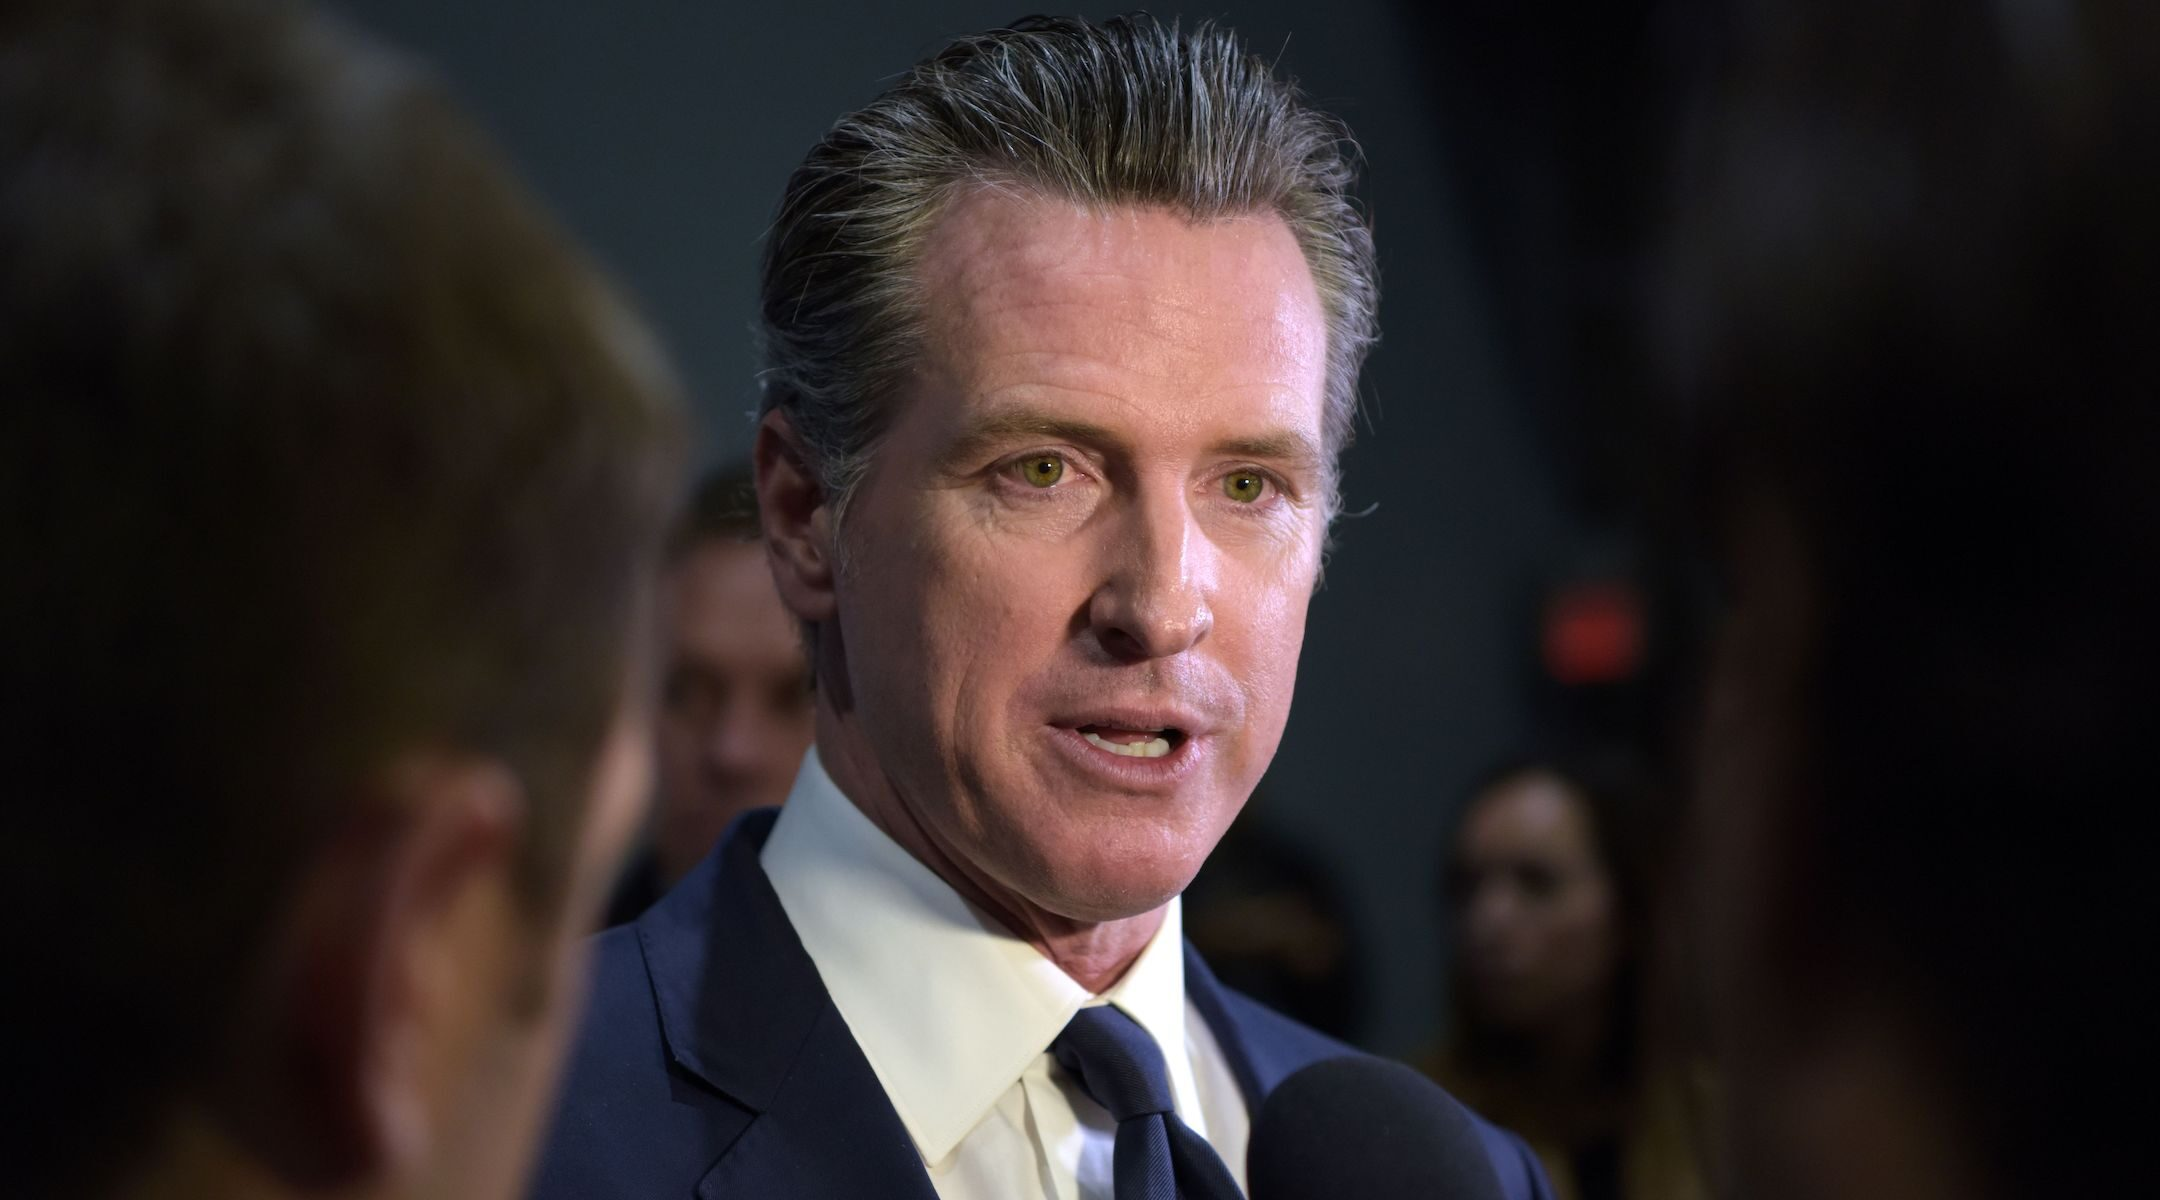 California Gov. Gavin Newsom, pictured here in 2019, vetoed a bill to make the ethnic studies curriculum a graduation requirement following objections to the content of its first draft. (Agustin Paullier/AFP via Getty Images)